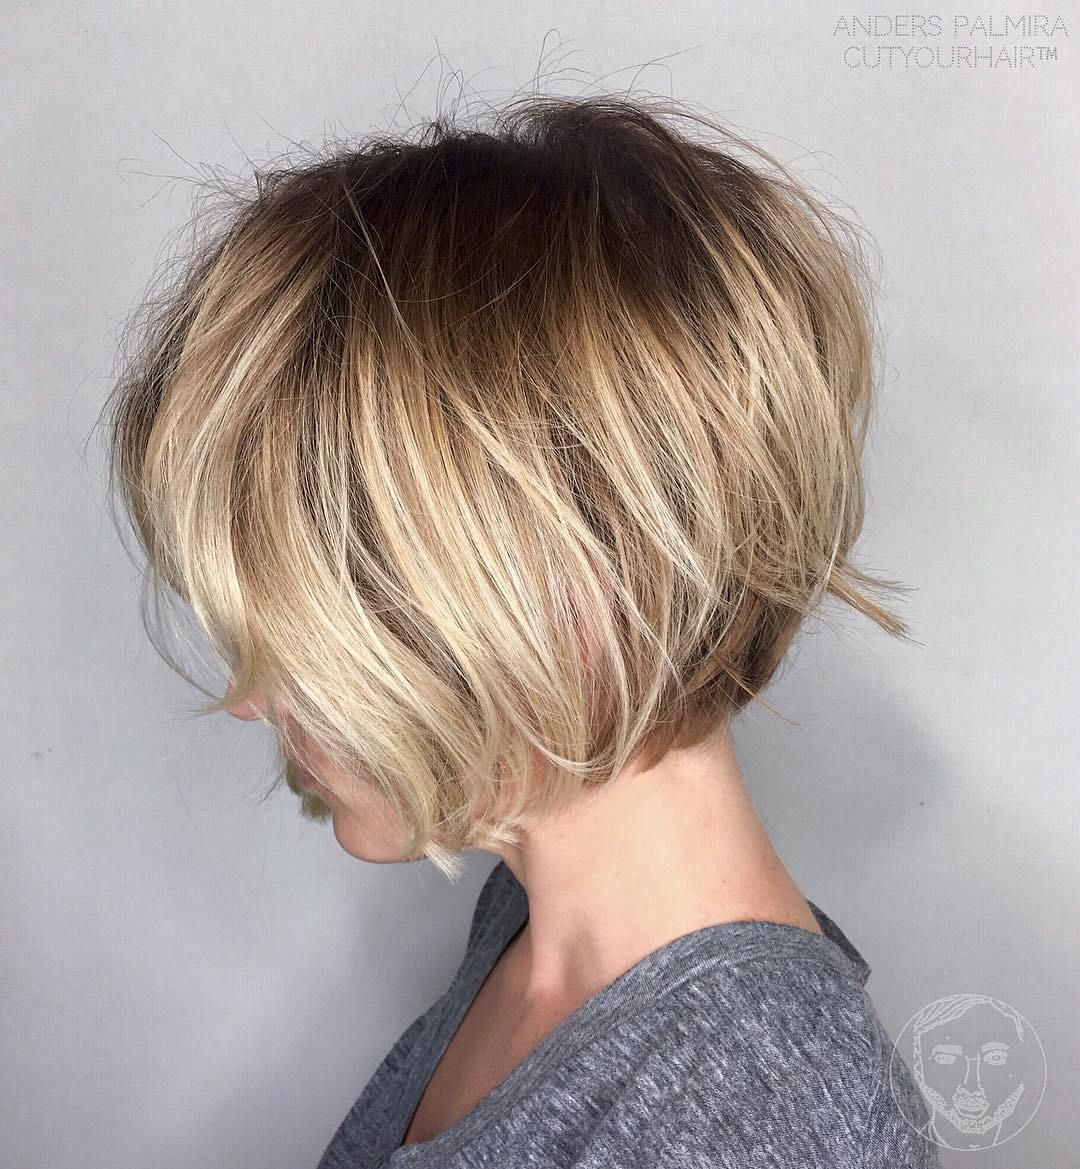 100 mind-blowing short hairstyles for fine hair | pinterest | short